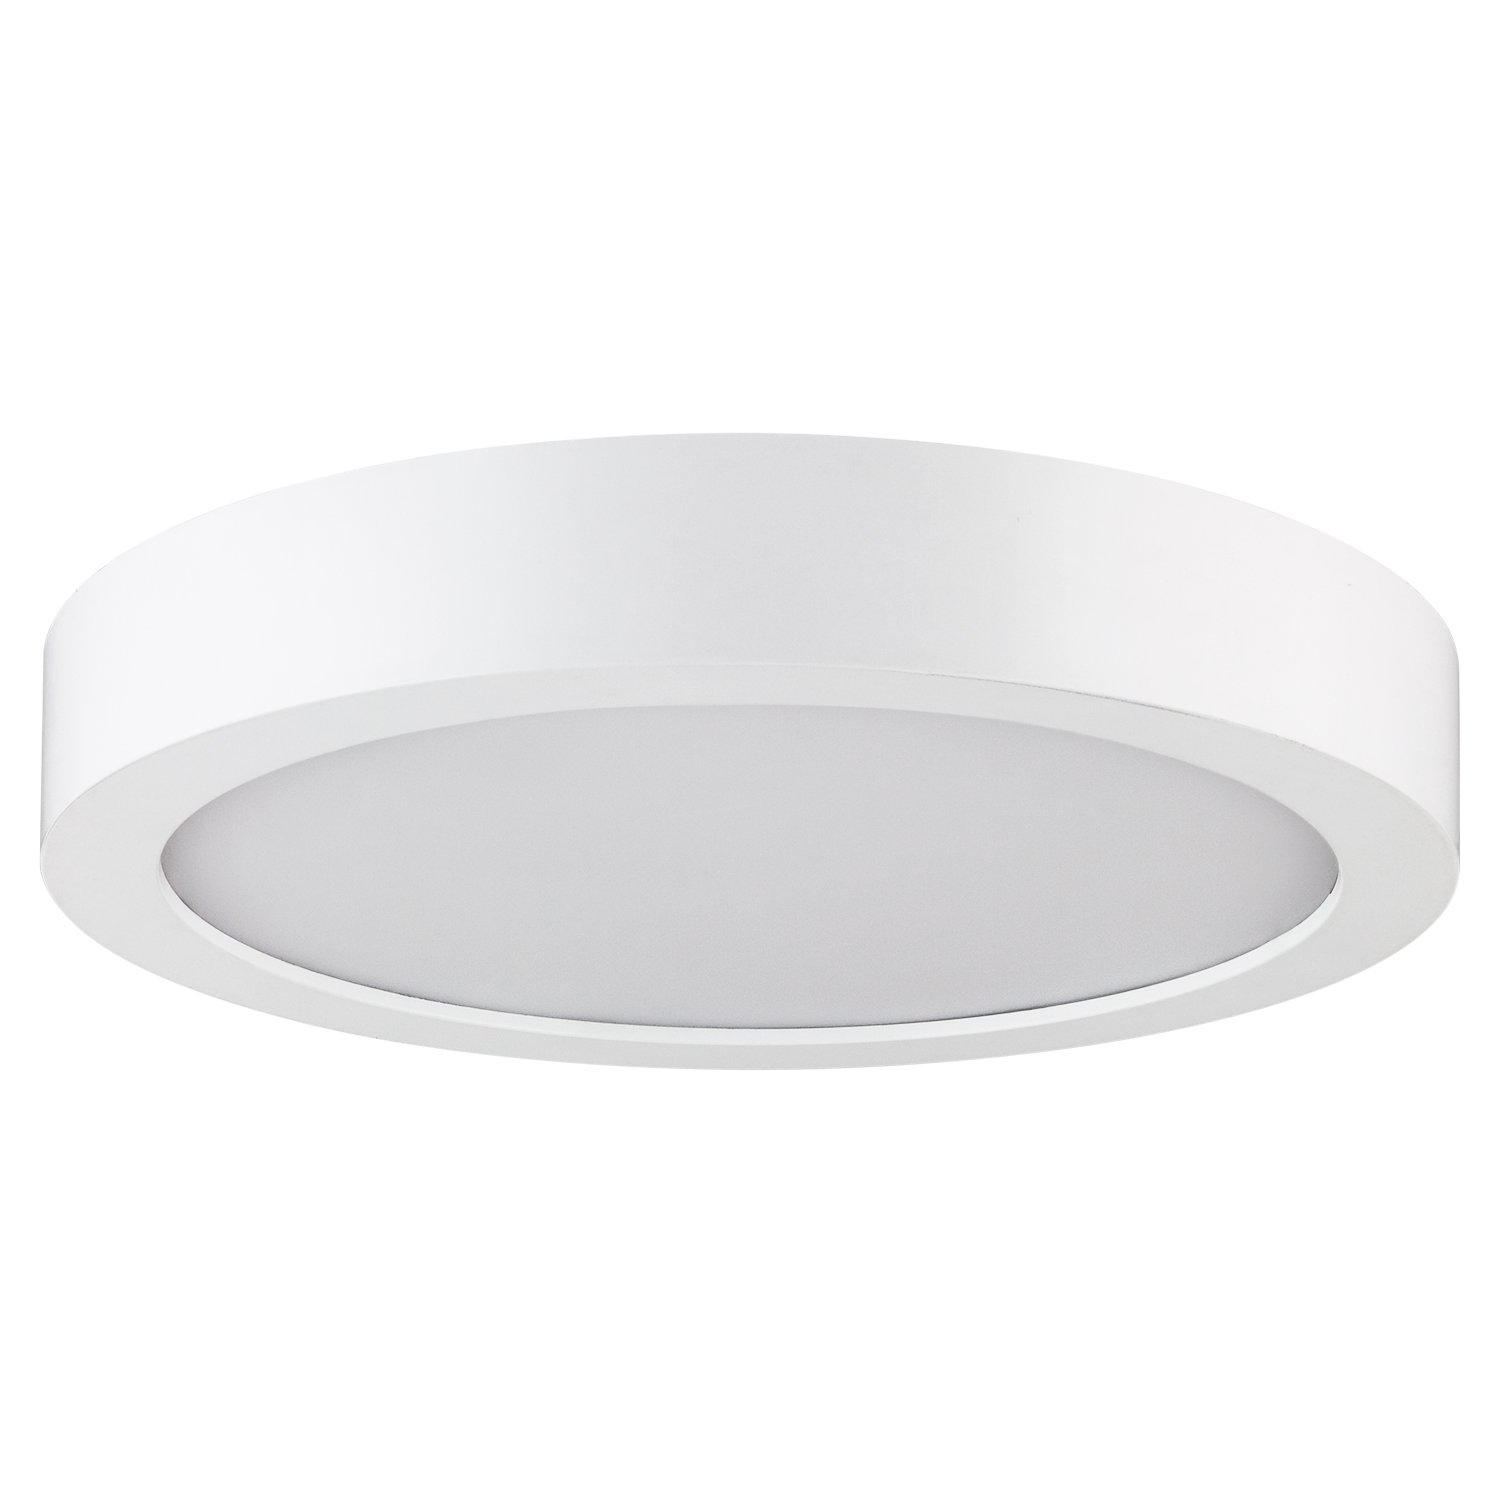 Sunlite 81207 Round Surface Mount Ceiling LED Light Fixture, 7'', 30K-Warm White